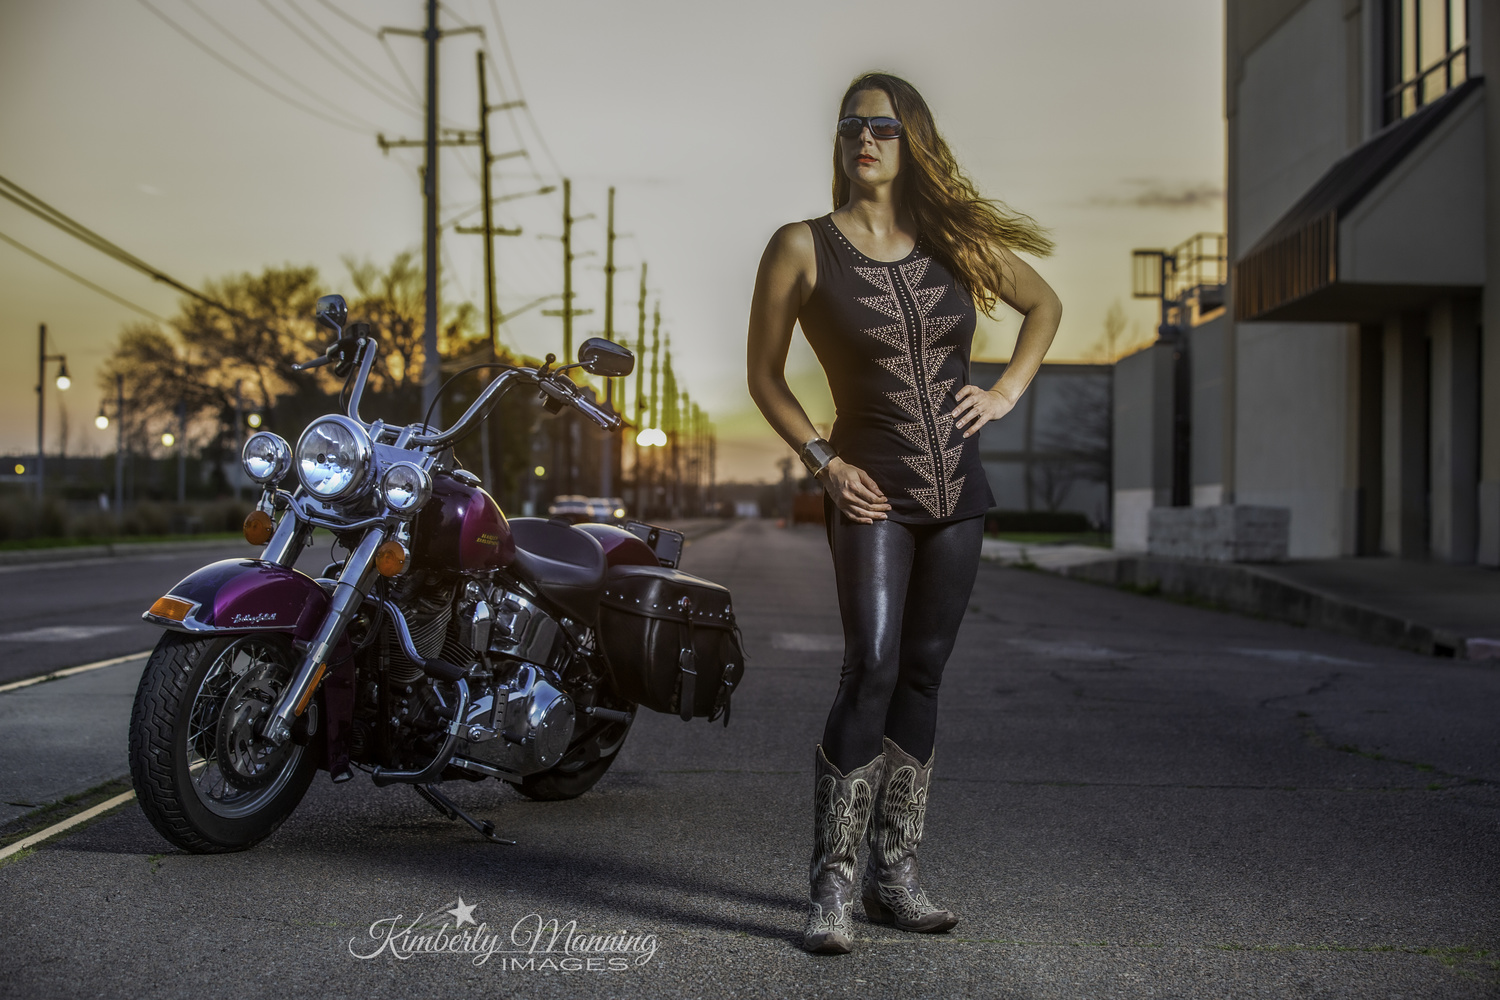 Cassie's Ride by Kimberly Manning